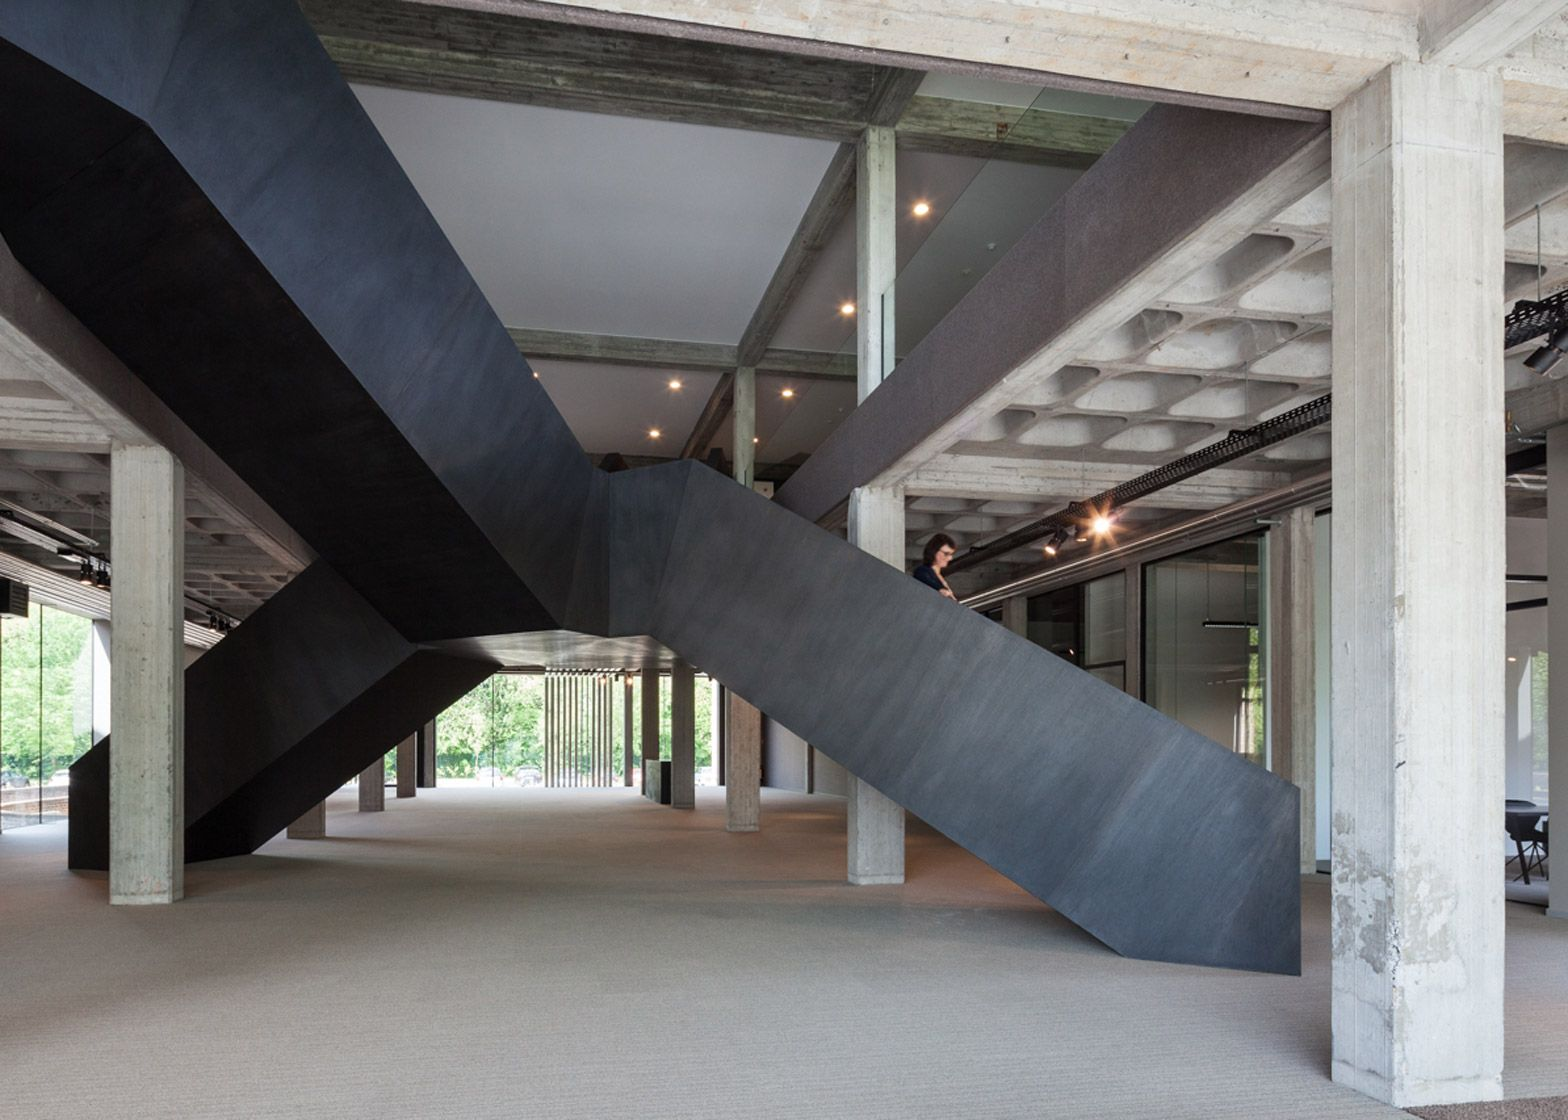 A multi-directional black staircase bridges the main entrance space in this converted office building in Belgium.